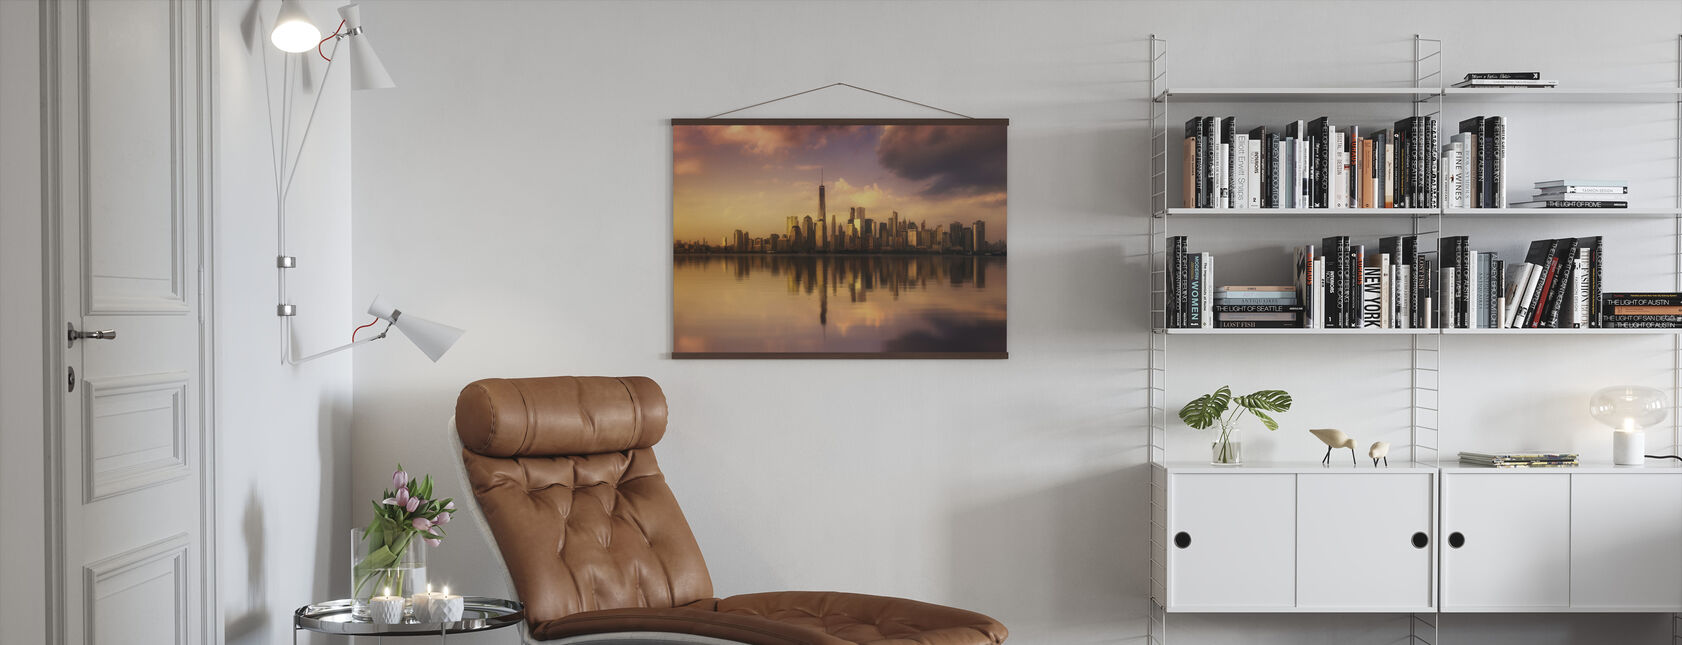 New York Dreams - Poster - Living Room